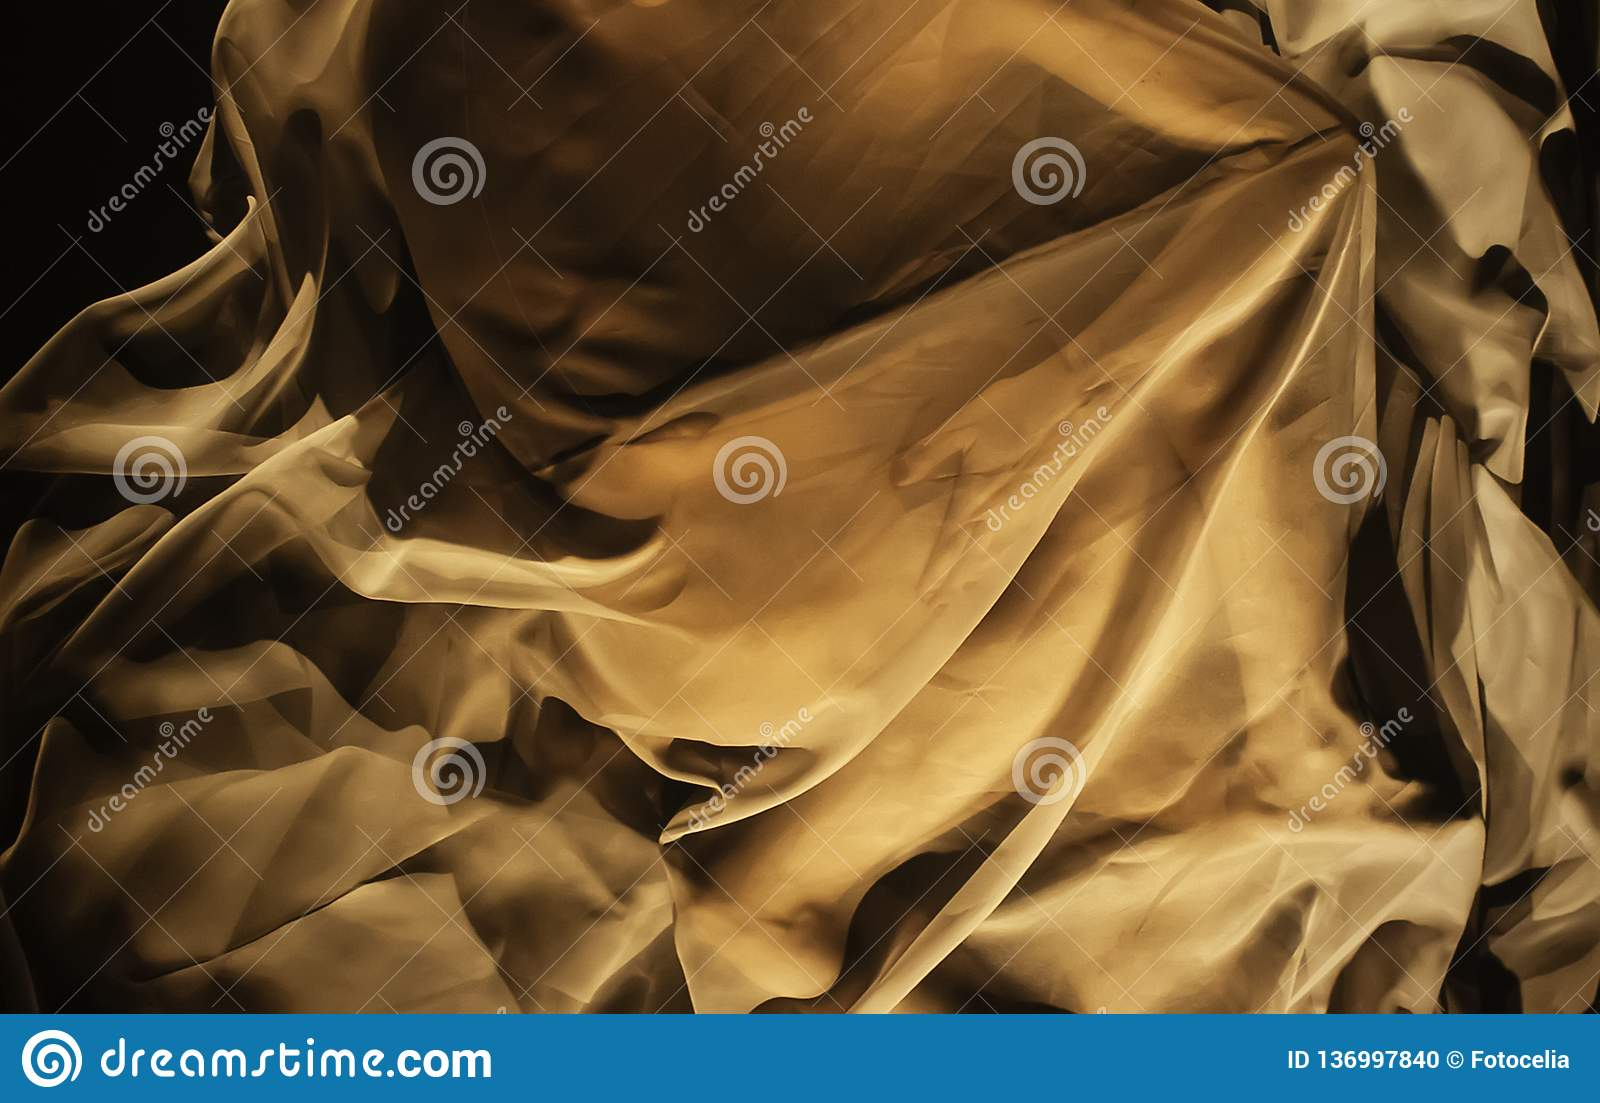 Red Satin Wallpapers - Top Free Red Satin Backgrounds